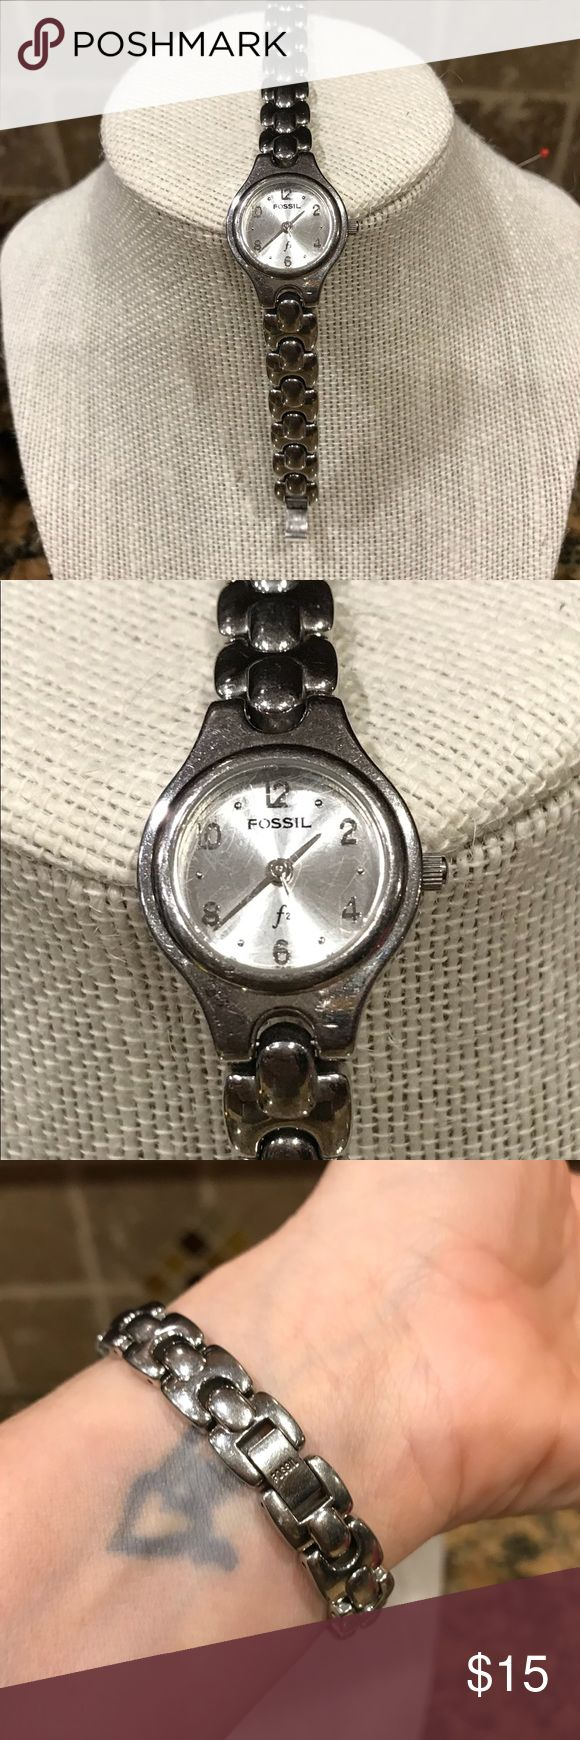 Fossil watch - good condition! Fossil watch. Needs a new battery, just went out. This was my favorite Watch! I got an Apple Watch now and don't wear it anymore. Fossil Accessories Watches